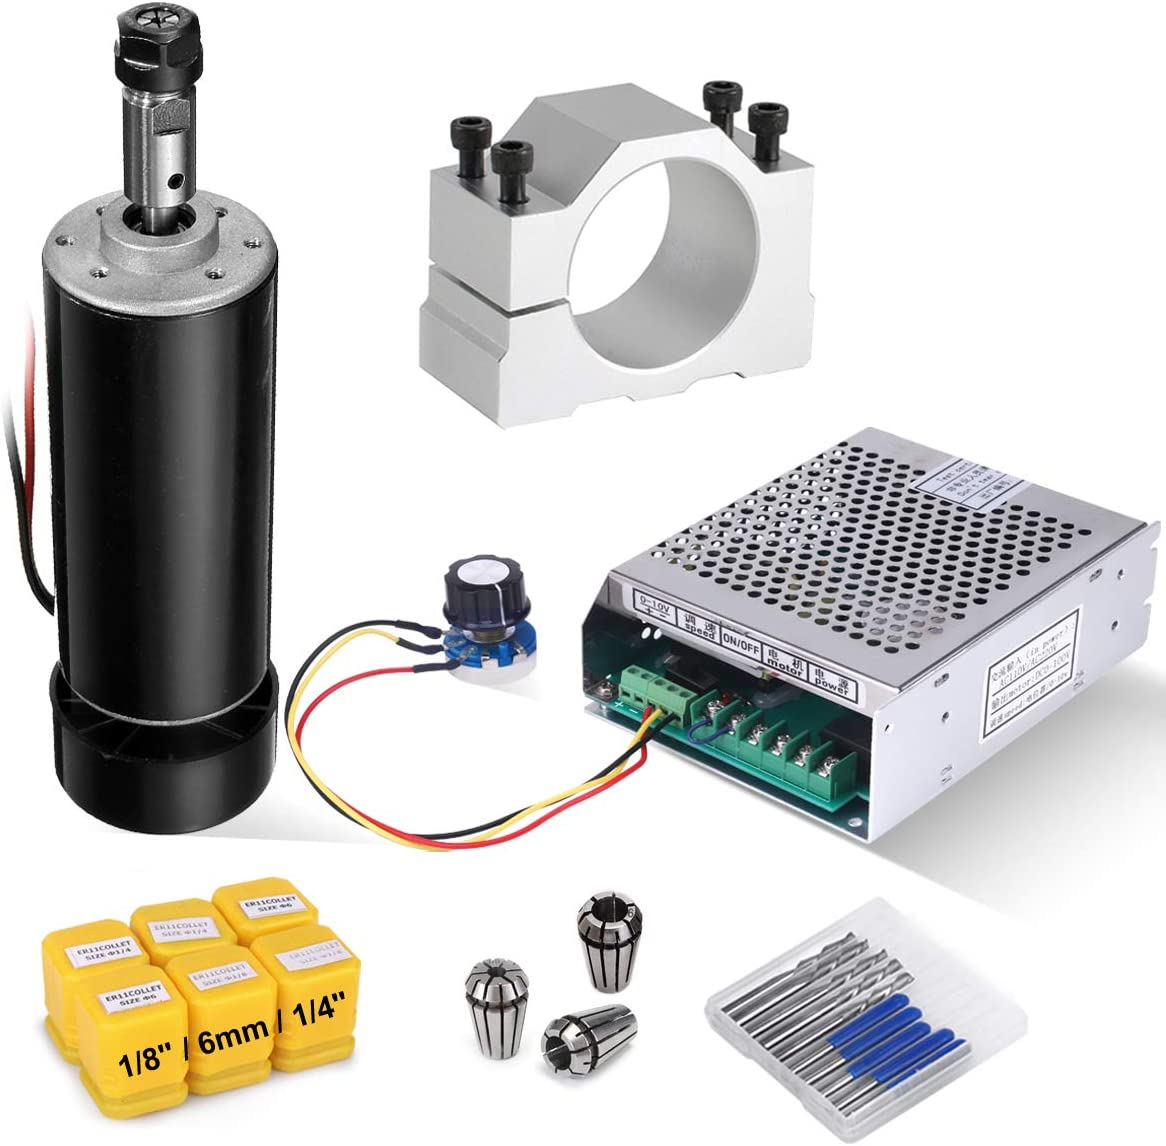 CNC Spindle Kit 500W Air Cooled 0.5kw Milling Motor + Spindle Speed Power Converter + 52mm Clamp + 1/8'' 1/4'' 6mm ER11 Collet + 10pcs CNC Bits for DIY Engraving